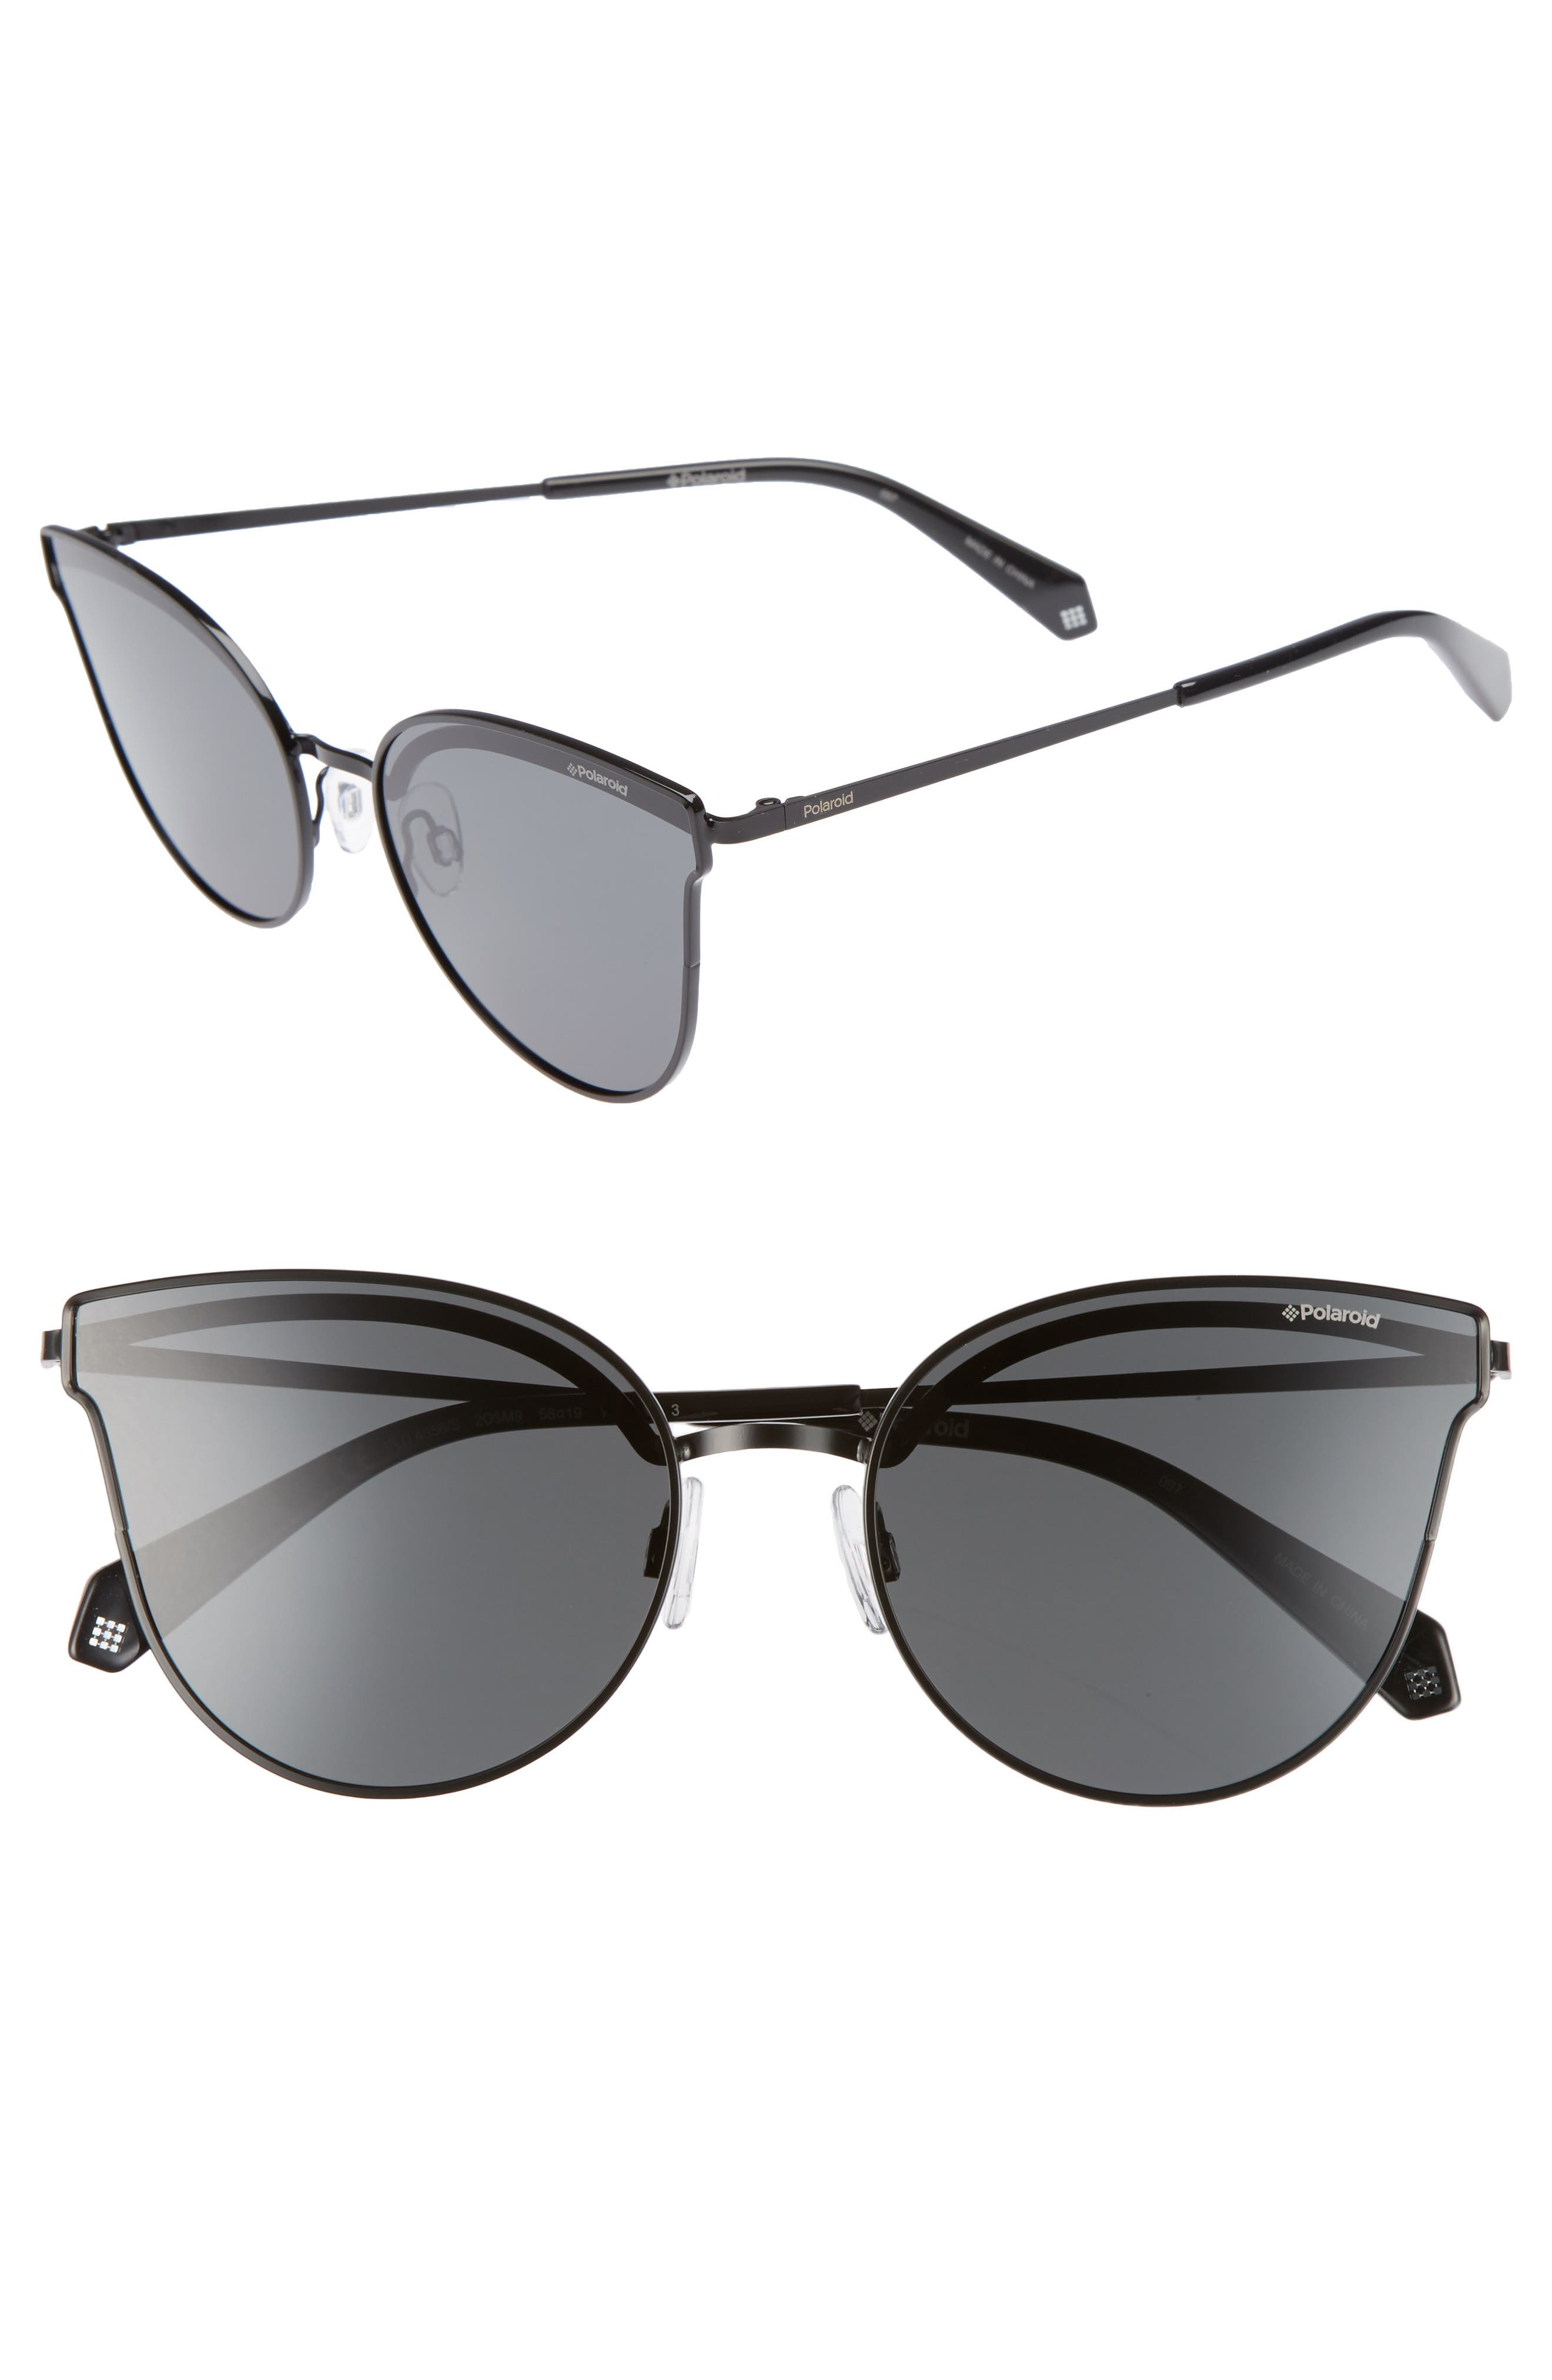 58mm Polarized Butterfly Sunglasses,                         Main,                         color, Black